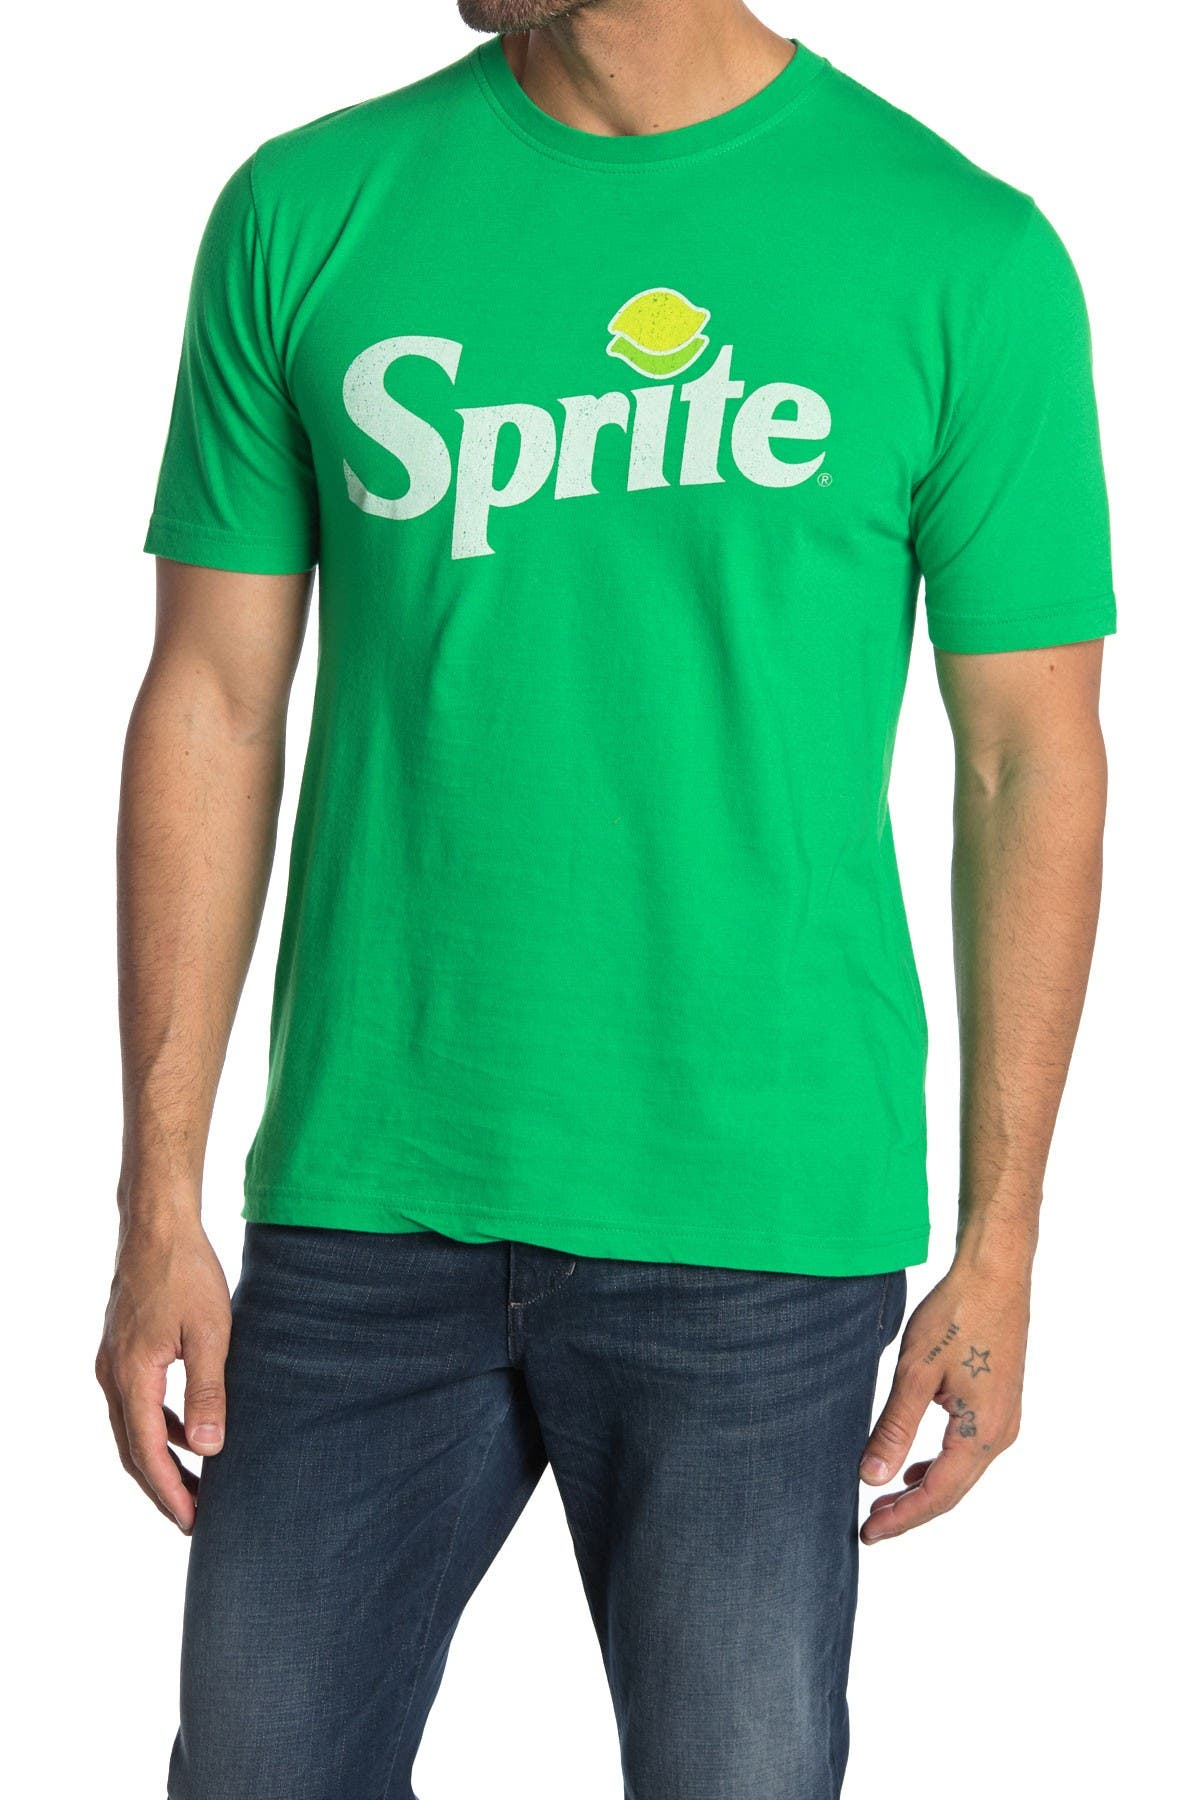 Image of American Needle Brass Tack Sprite T-Shirt